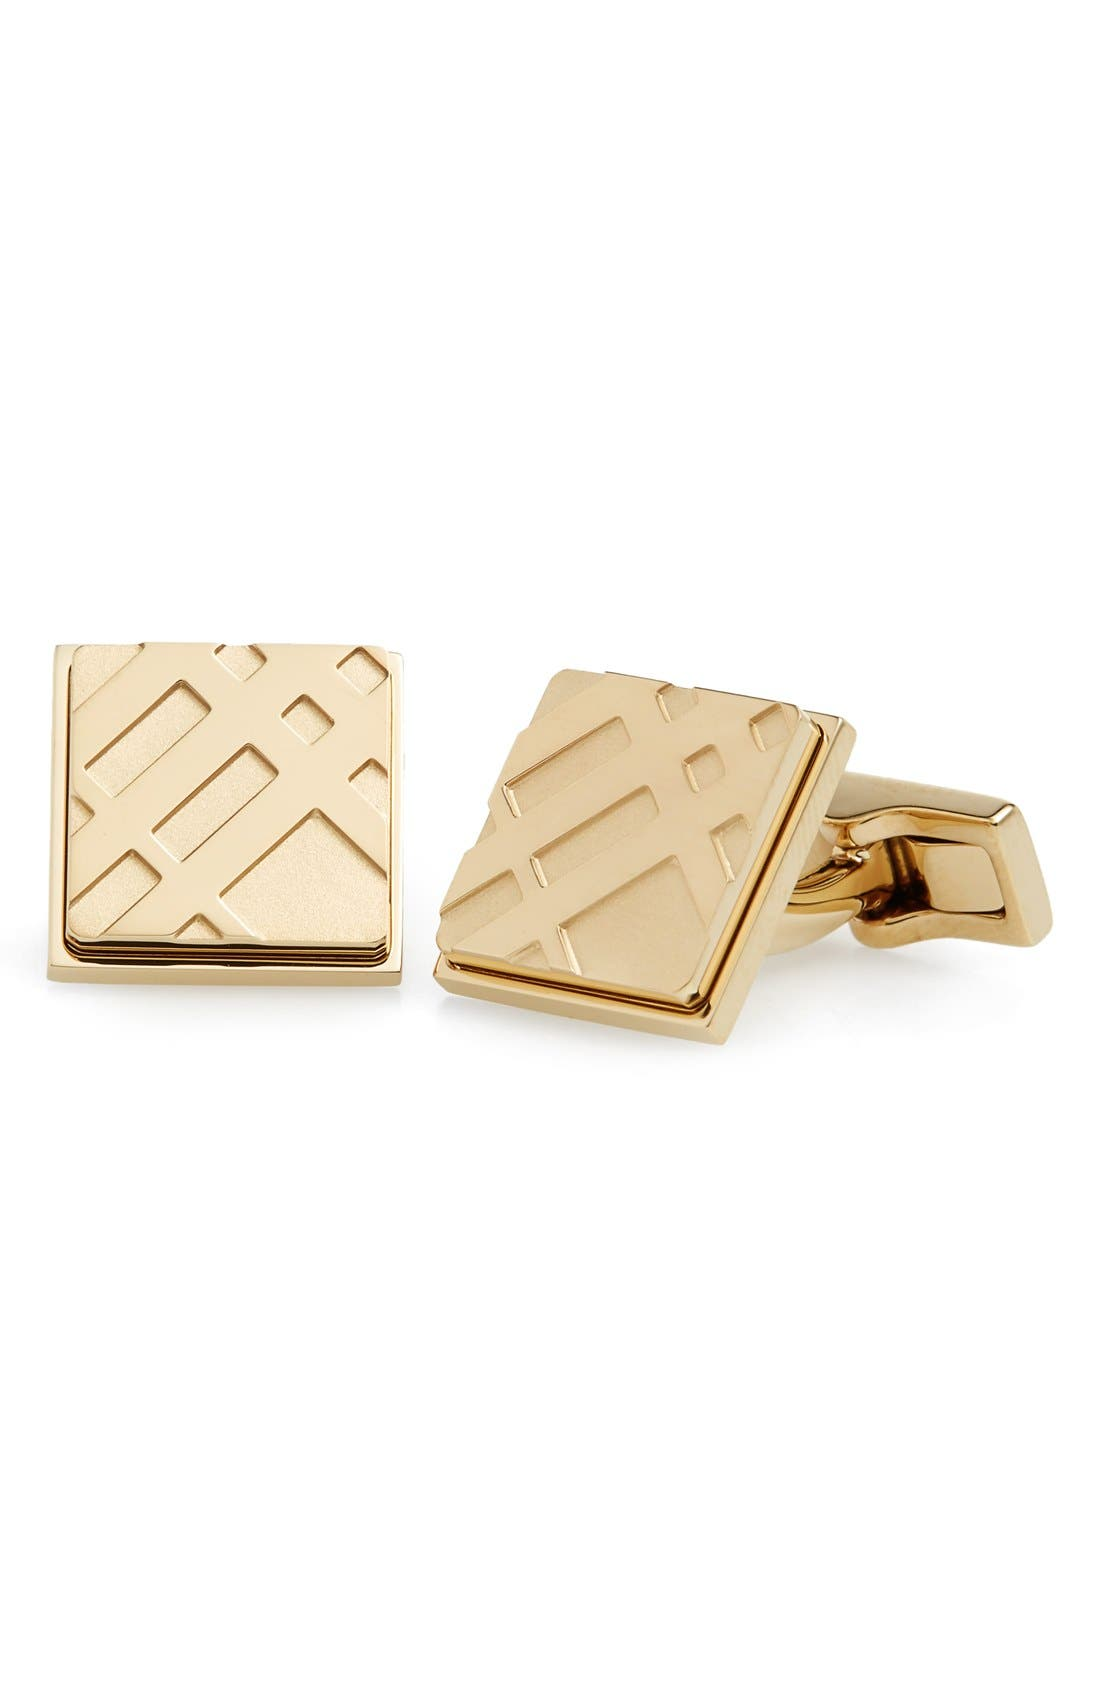 Square Cuff Links,                             Main thumbnail 1, color,                             Pale Gold